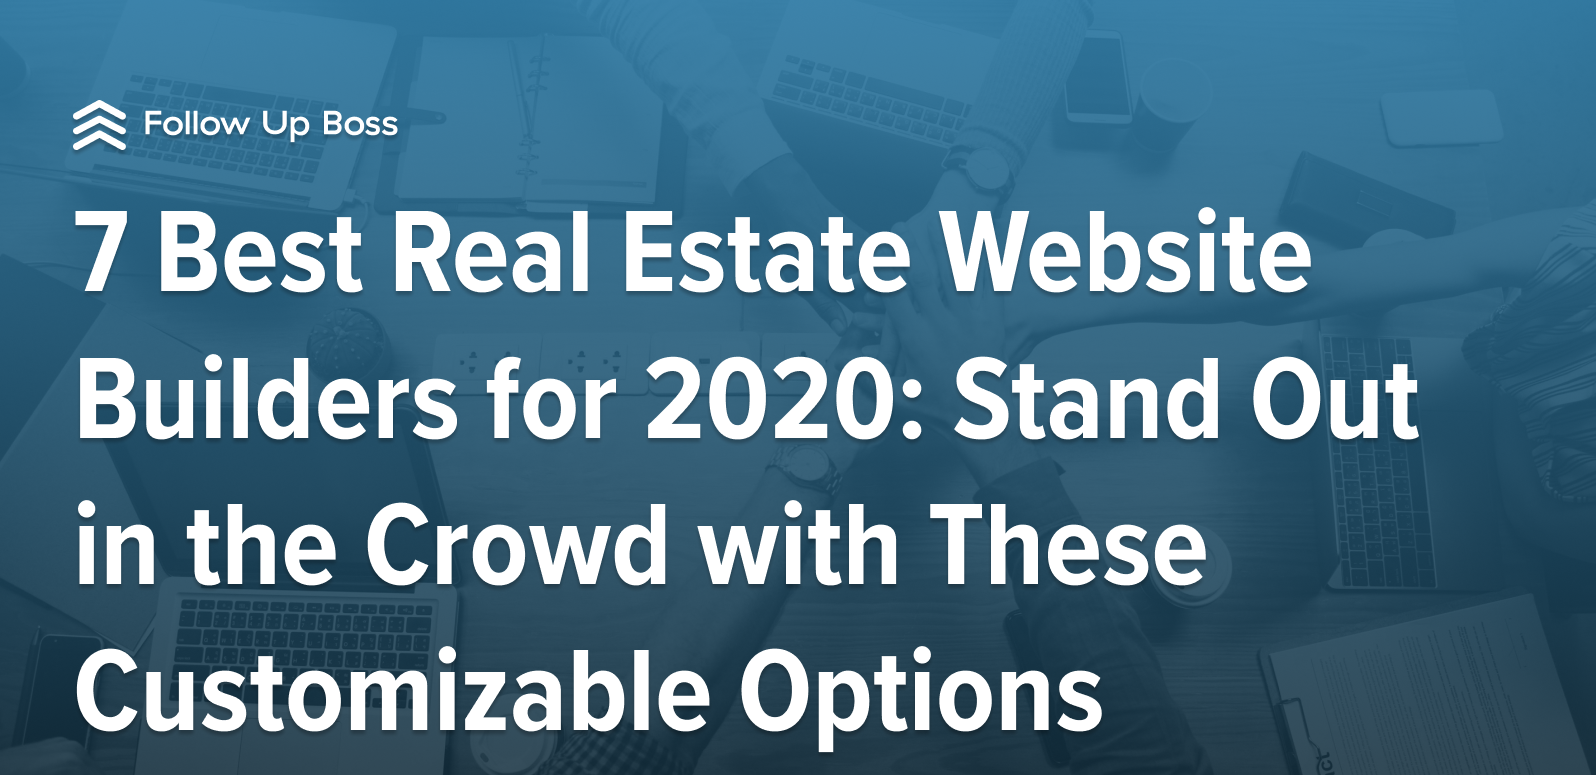 7 Best Real Estate Website Builders for 2020: Stand Out in the Crowd with These Customizable Options